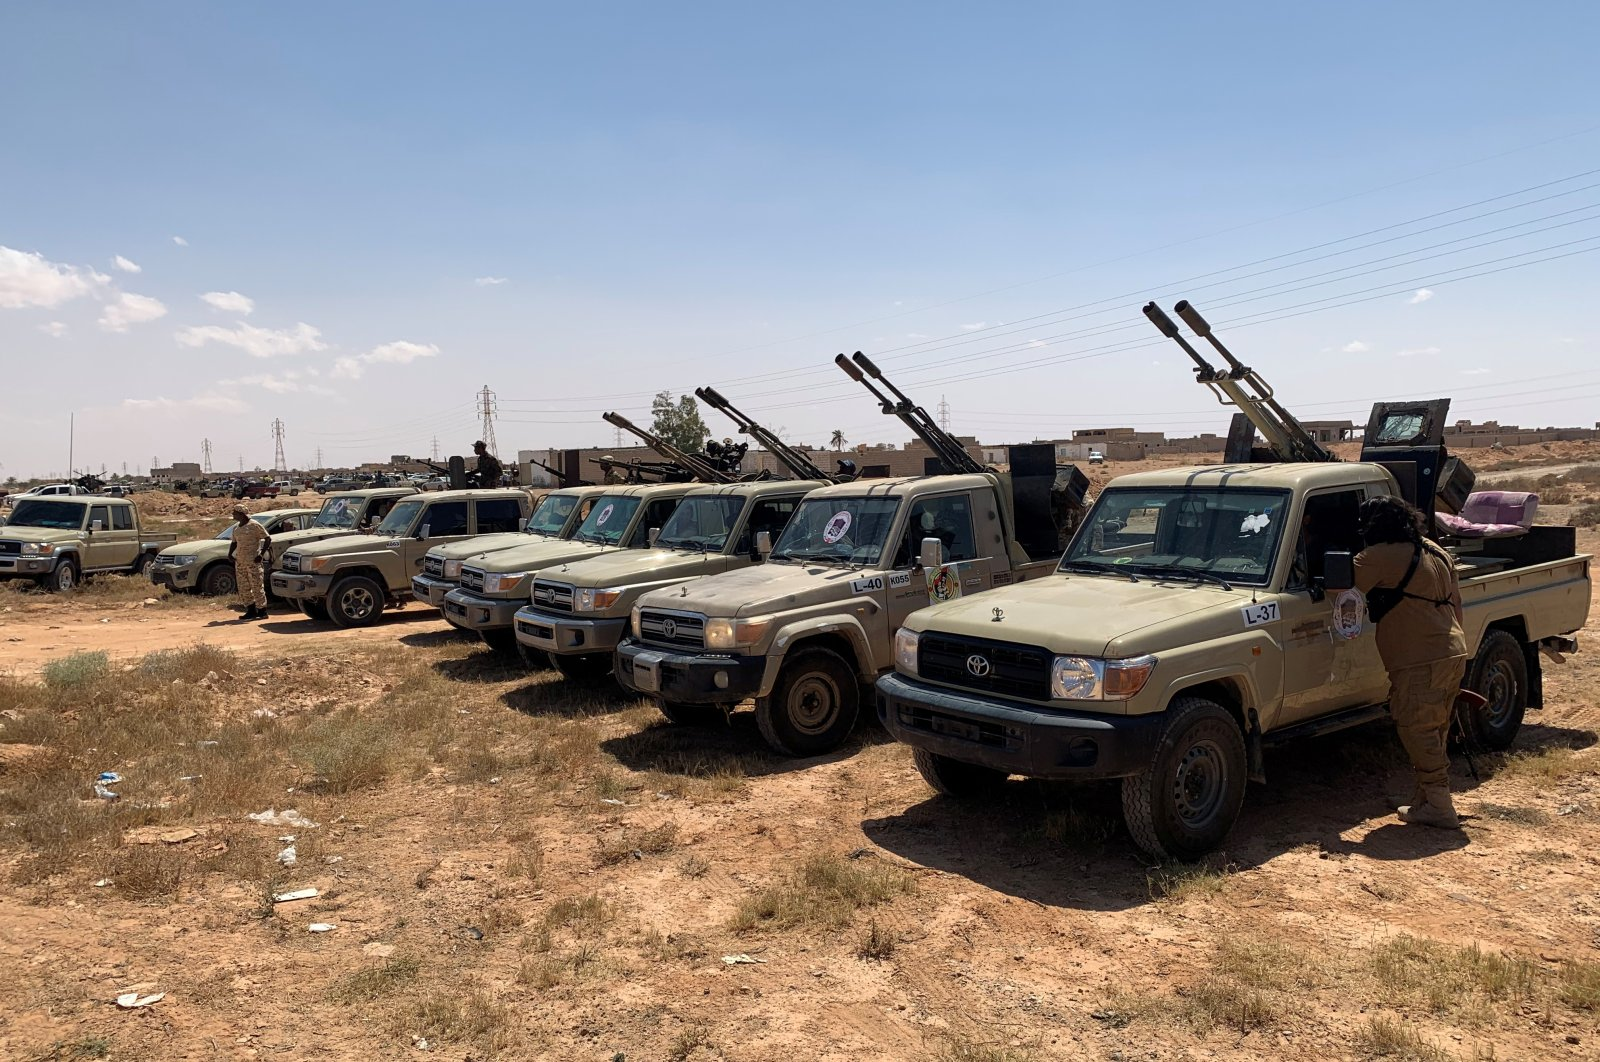 Troops loyal to Libya's internationally recognized government are seen in military vehicles as they prepare before heading to Sirte, on the outskirts of Misrata, Libya, July 18, 2020. (REUTERS Photo)